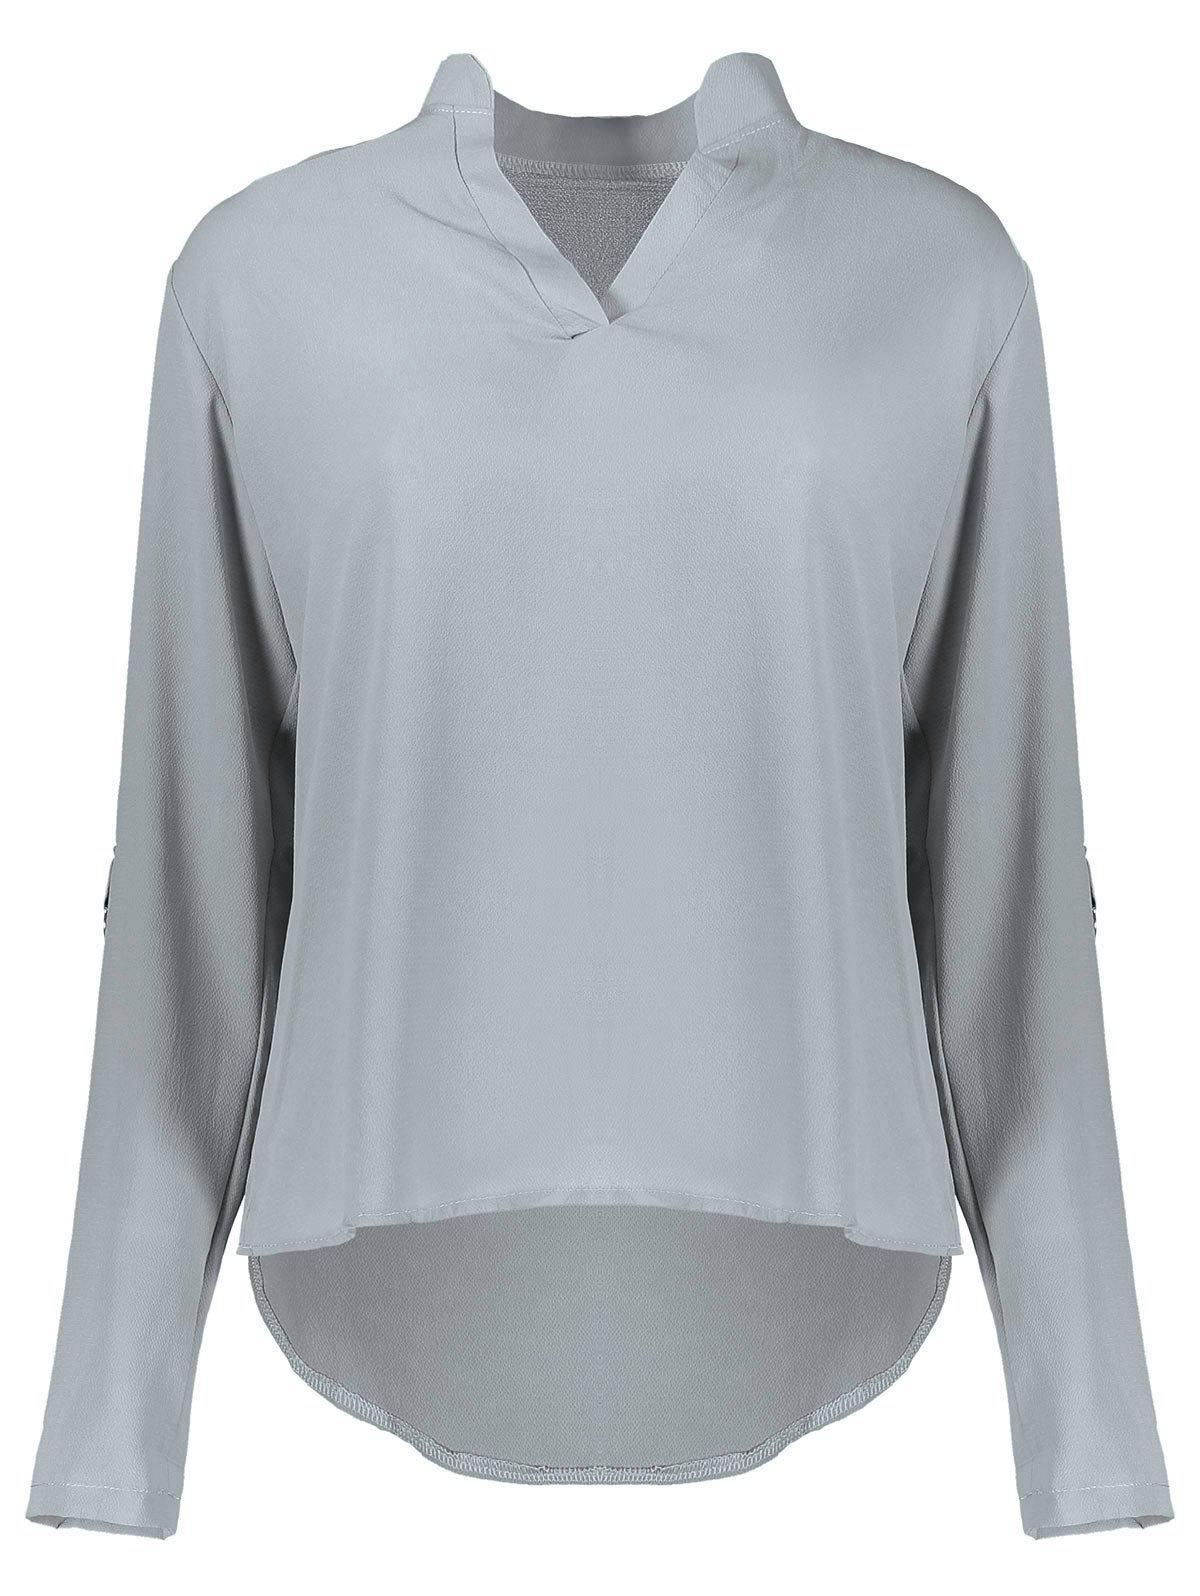 Best Concise Solid Color V-Neck 3/4 Sleeve Chiffon Blouse For Women